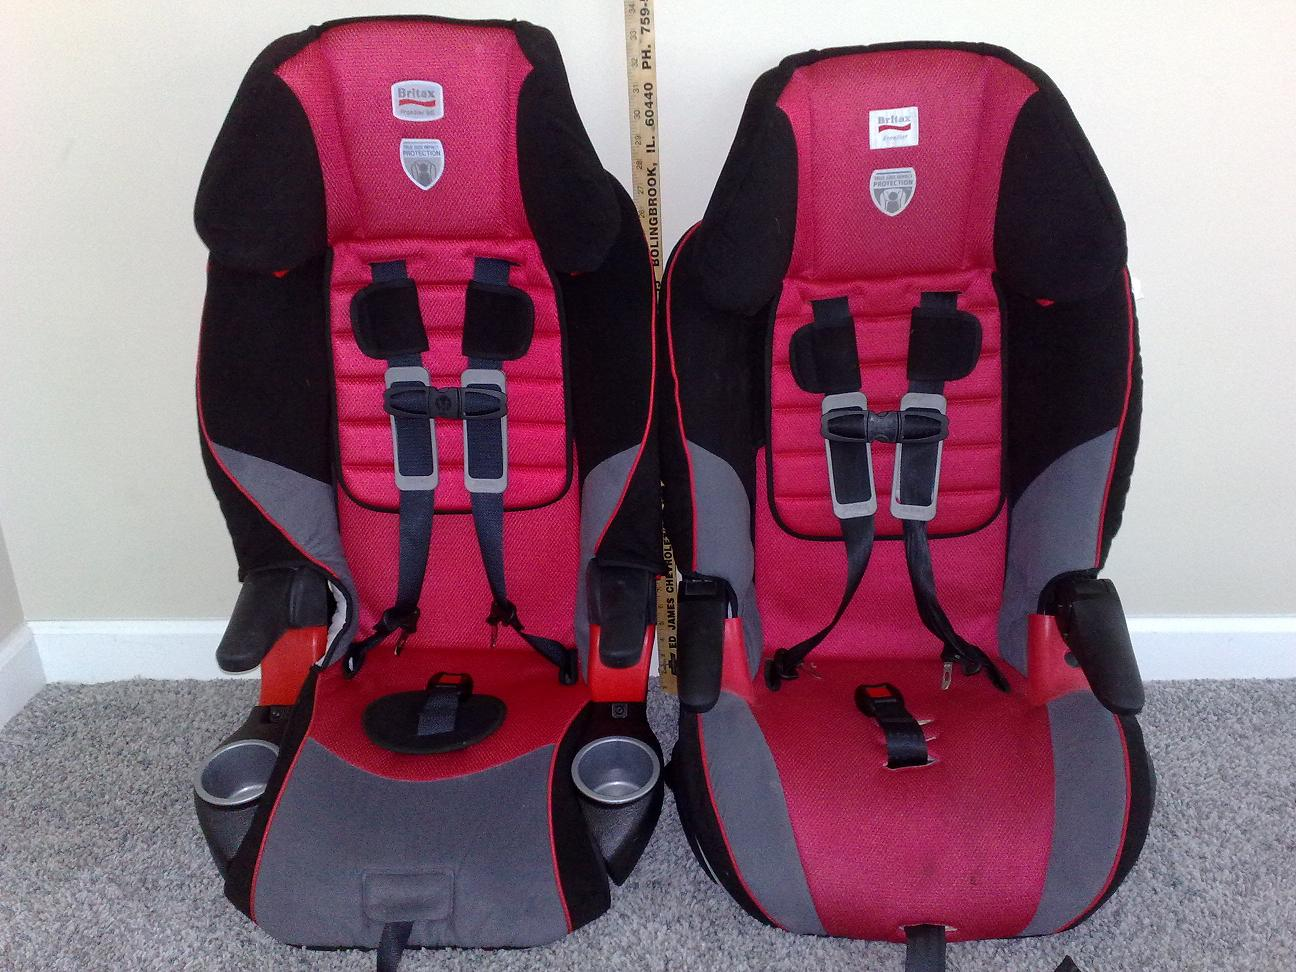 Outstanding Britax Frontier Car Seat Cover Forskolin Free Trial Chair Design Images Forskolin Free Trialorg